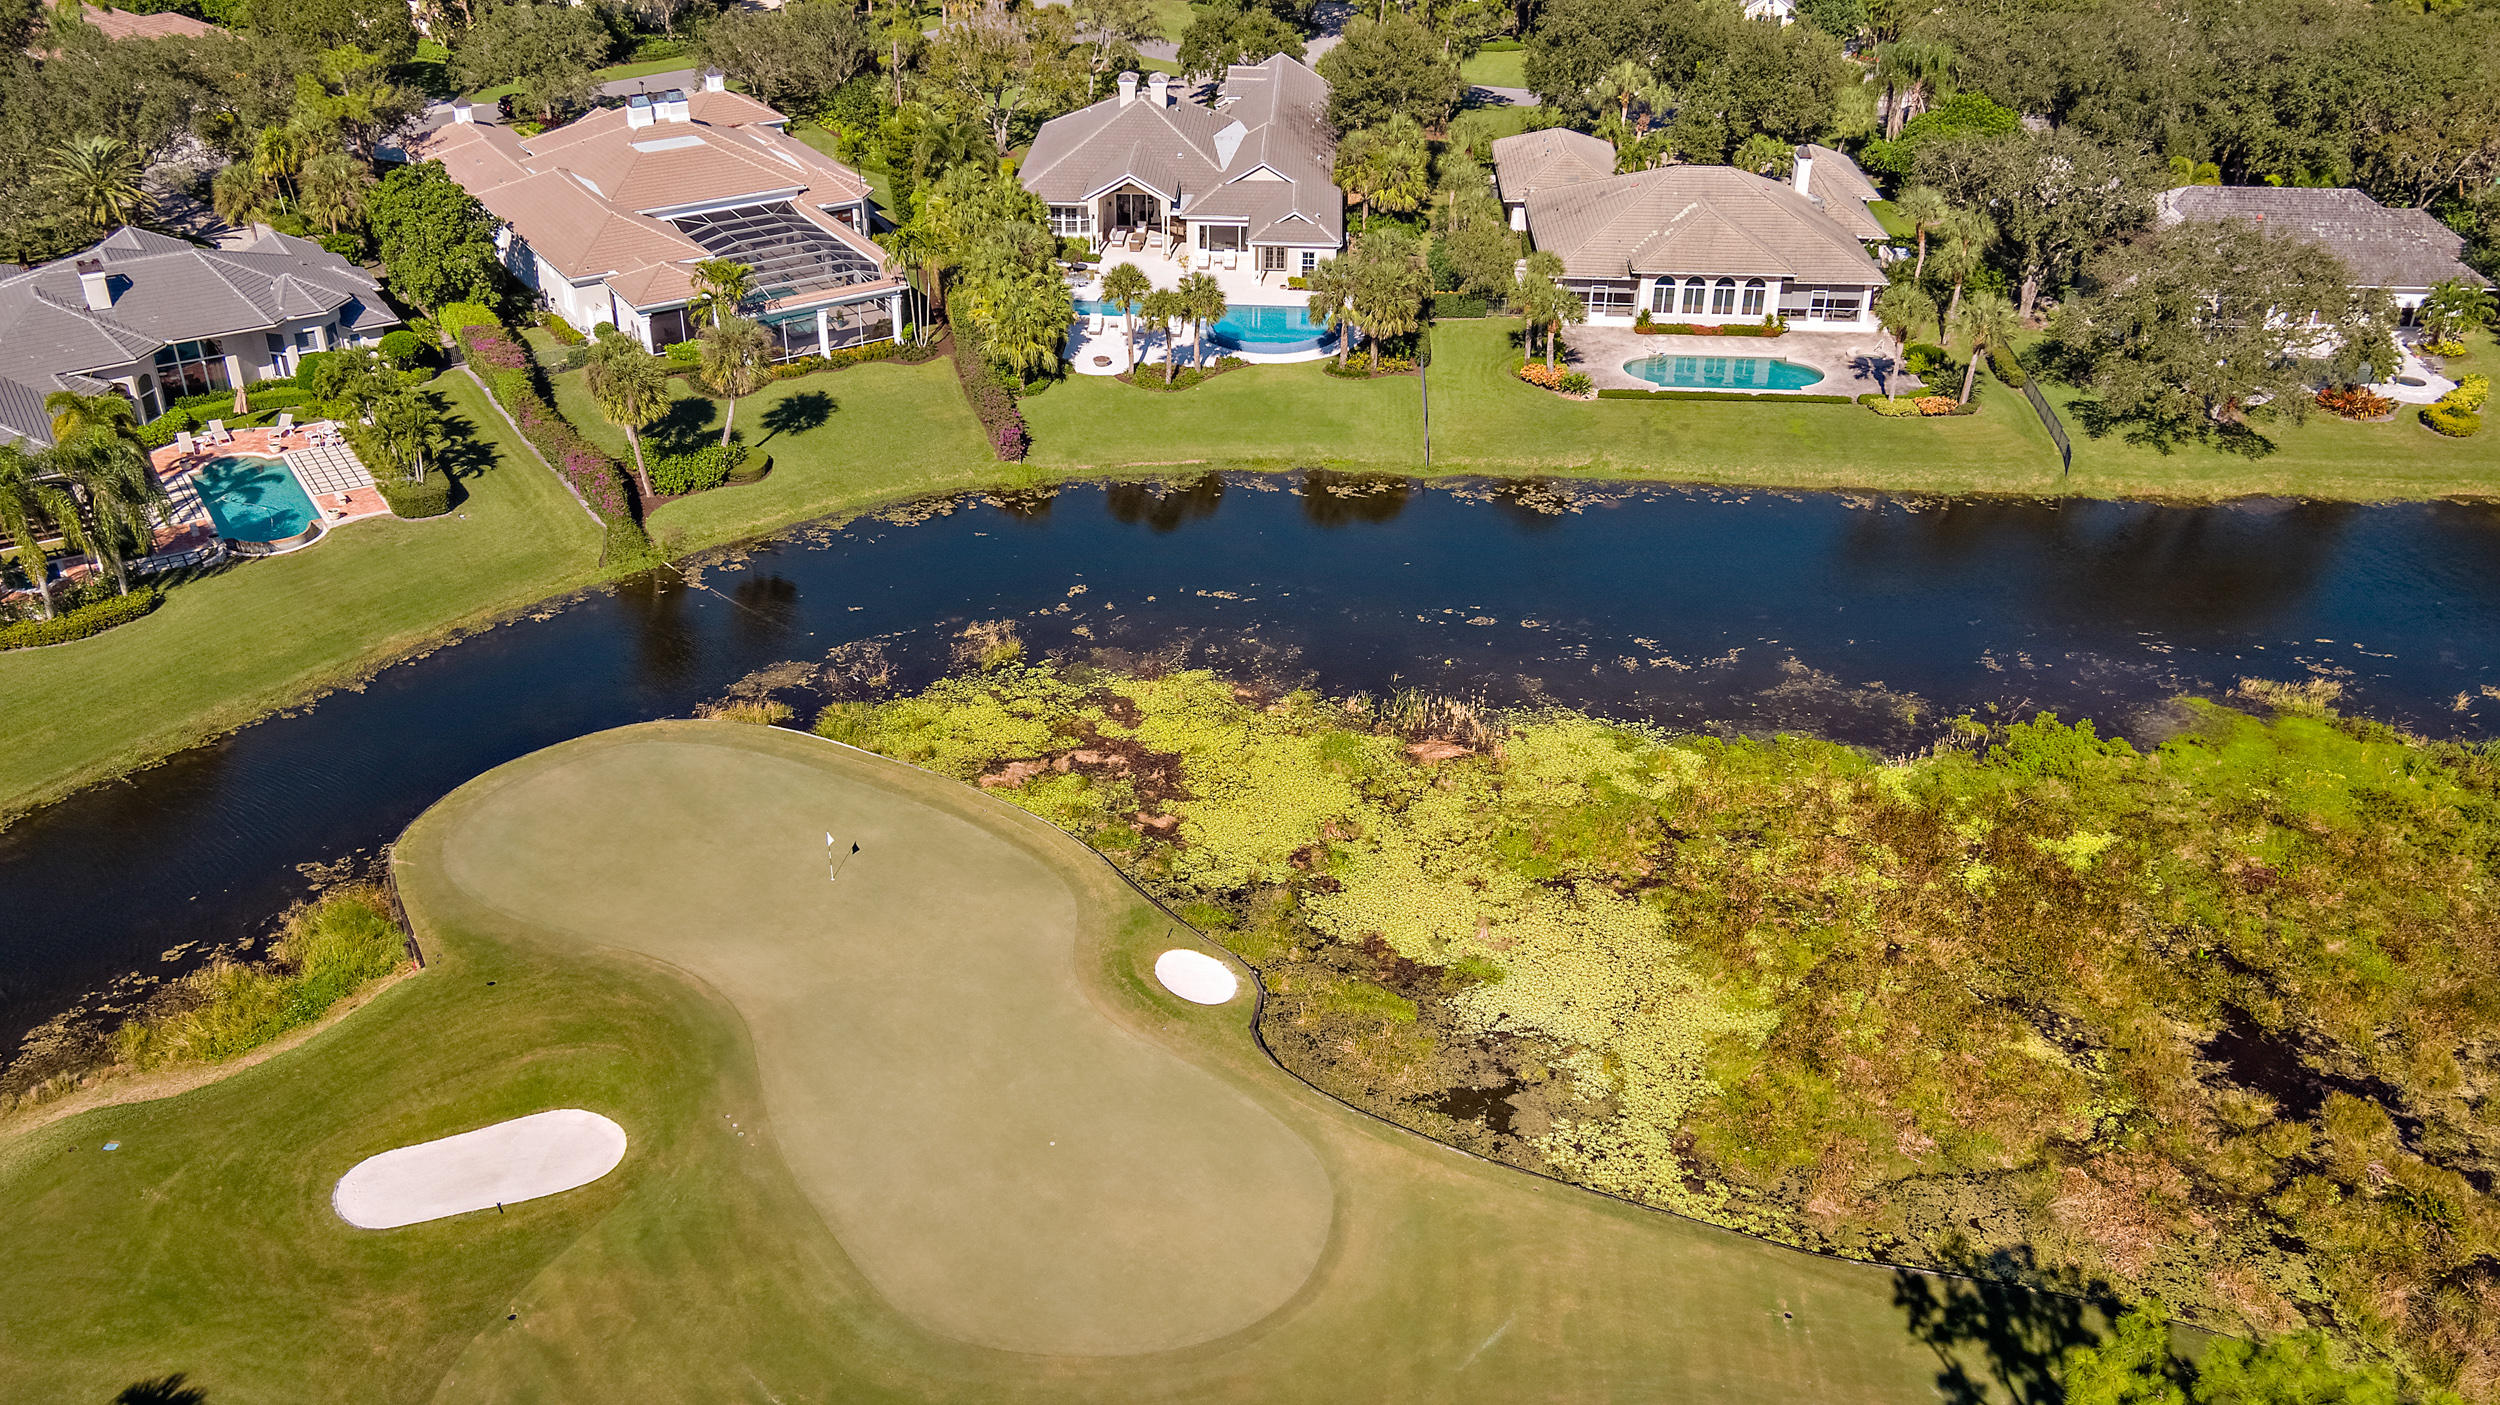 OLD MARSH PALM BEACH GARDENS REAL ESTATE